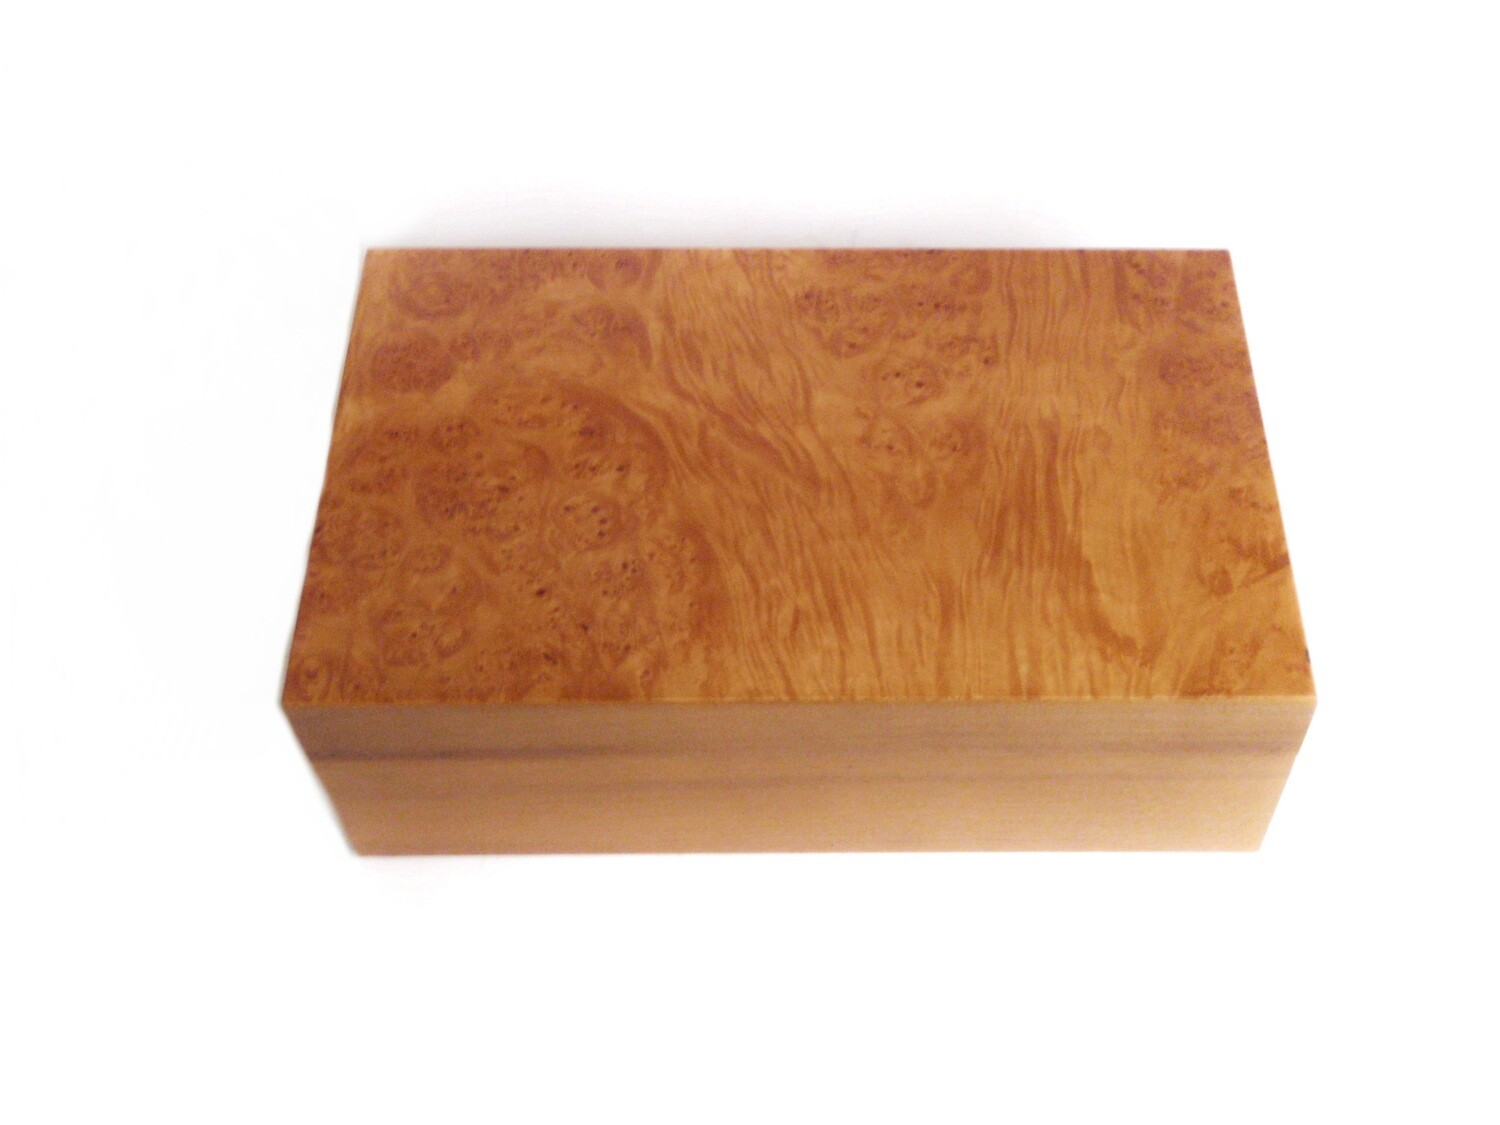 Vintage Italian Birdseye Maple Cigar Box Humidor